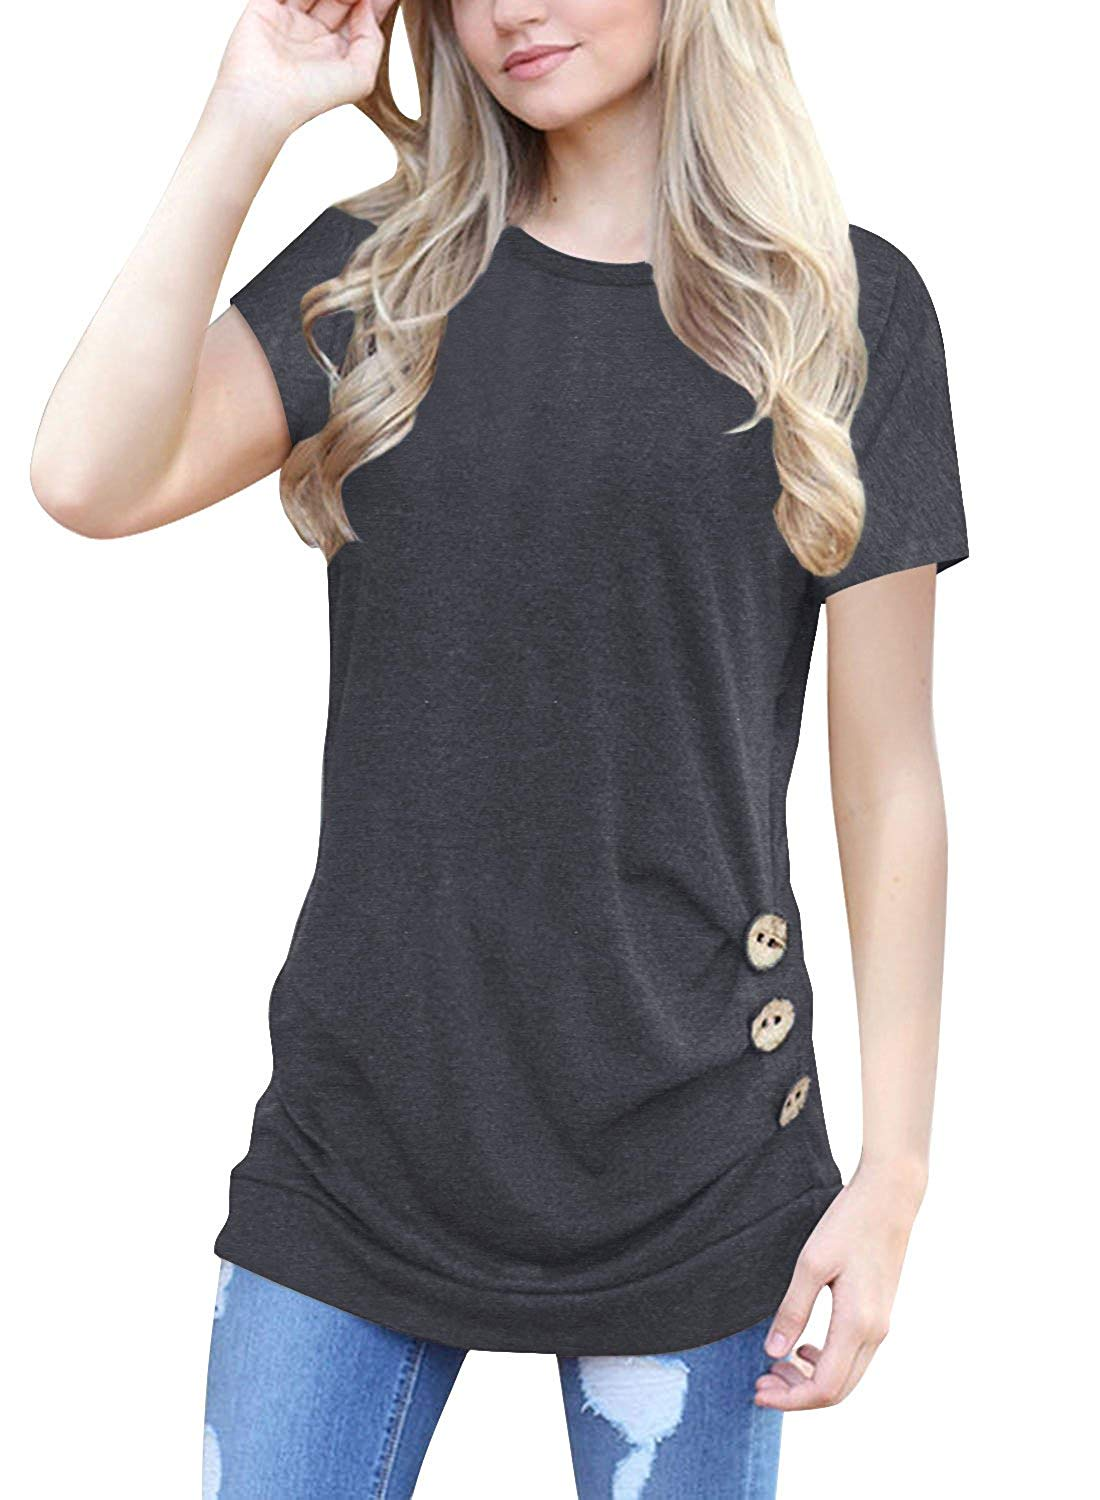 7e331501091b Get Quotations · Adibosy Women's Short Sleeve Plain T Shirts Slim Fit Round  Neck Tee Shirts with Decorative Buttons